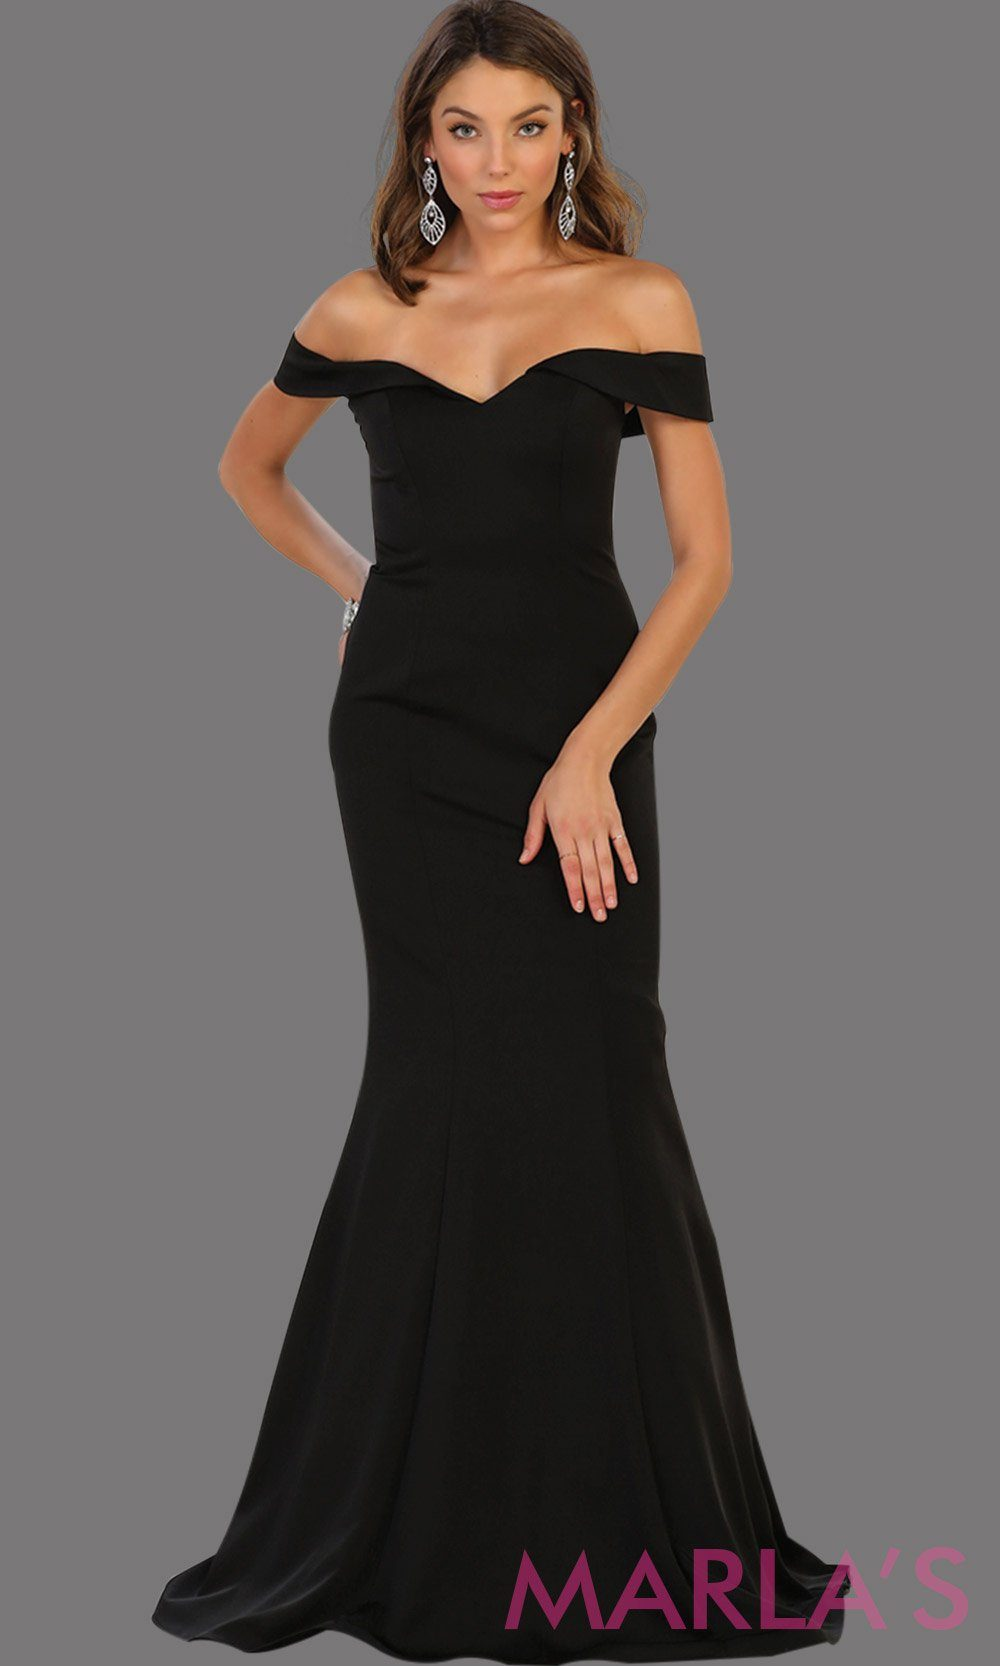 Long off shoulder black fitted mermaid dress. This sleek and sexy dress is perfect as a bridesmaid dress, formal wedding party dress, wedding guest dress, black gala gown, charity event dress. Available in plus size